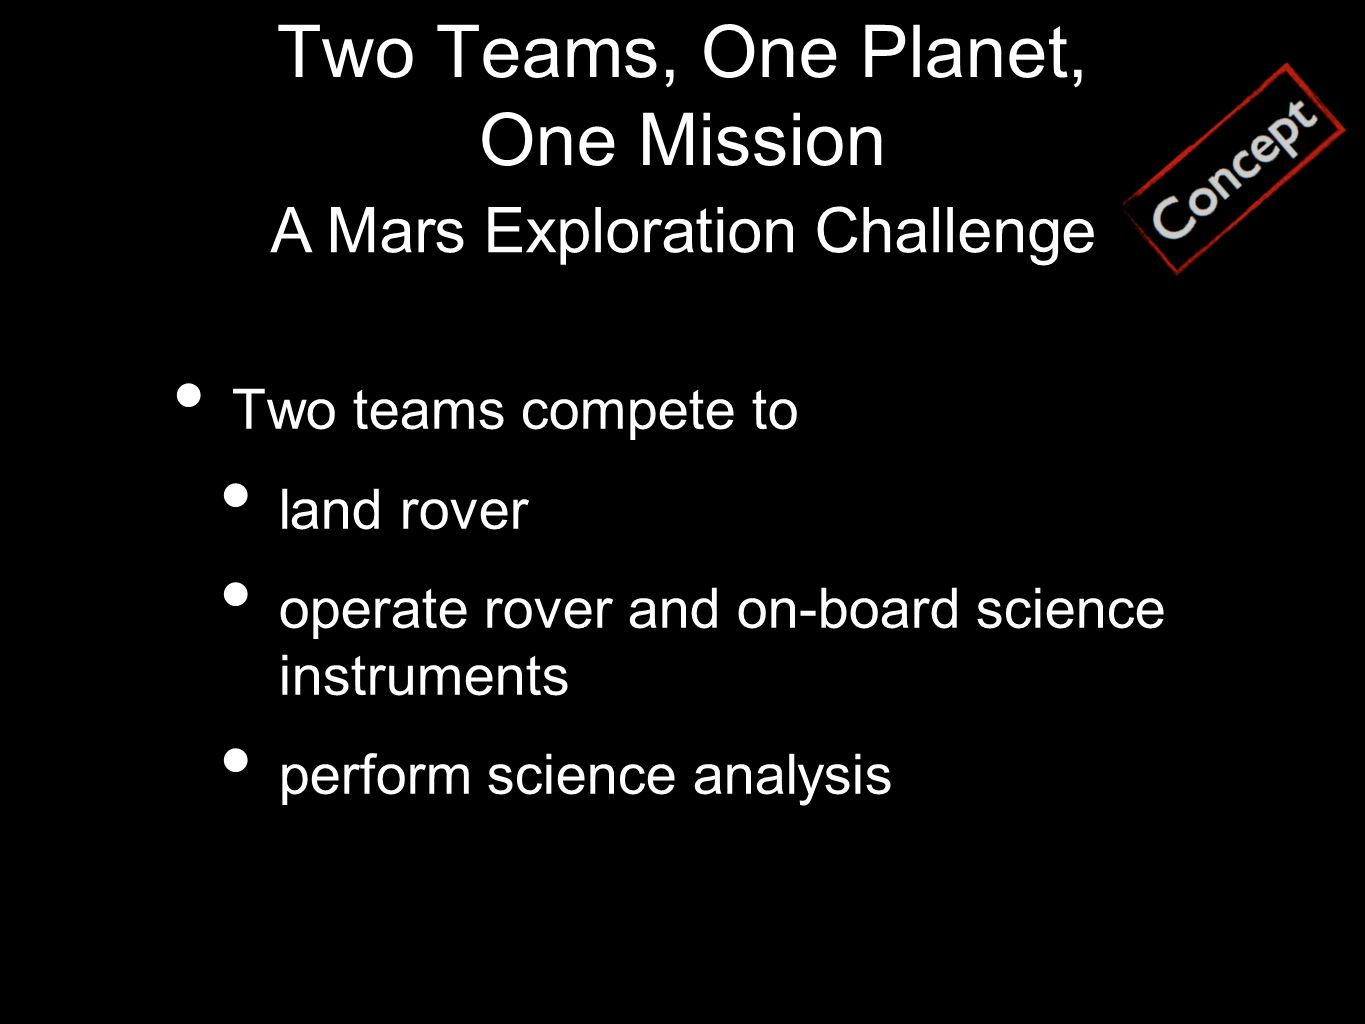 Two Teams, One Planet, One Mission Two teams compete to land rover operate rover and on-board science instruments perform science analysis A Mars Exploration Challenge